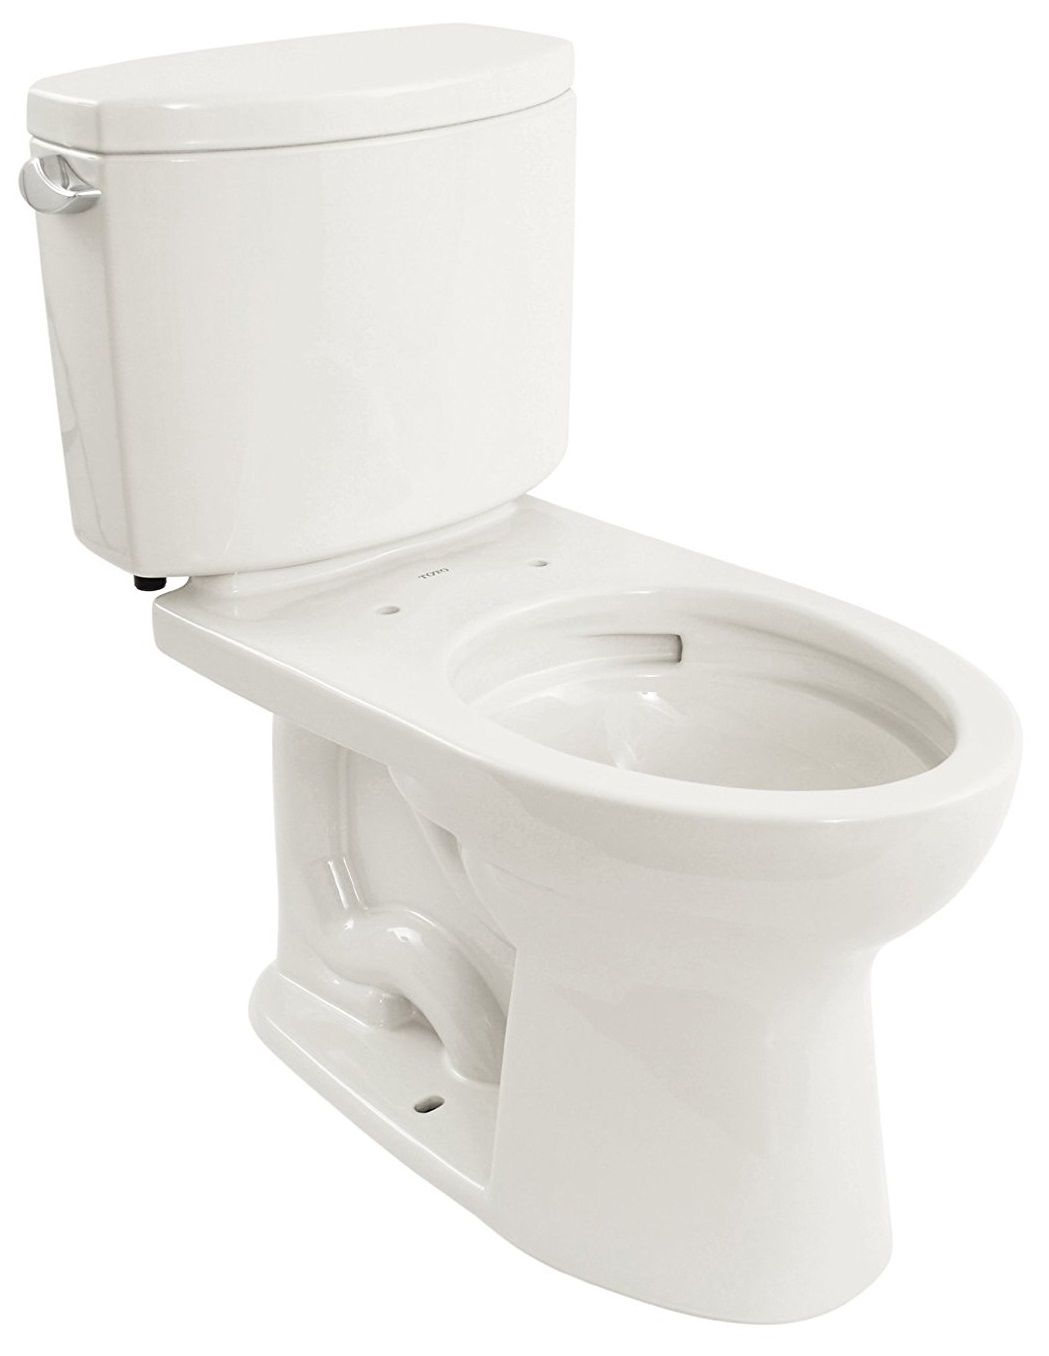 Recommended Best Flushing Toilet Of 2020 Floor Outlets Toto Toilet Cleaning